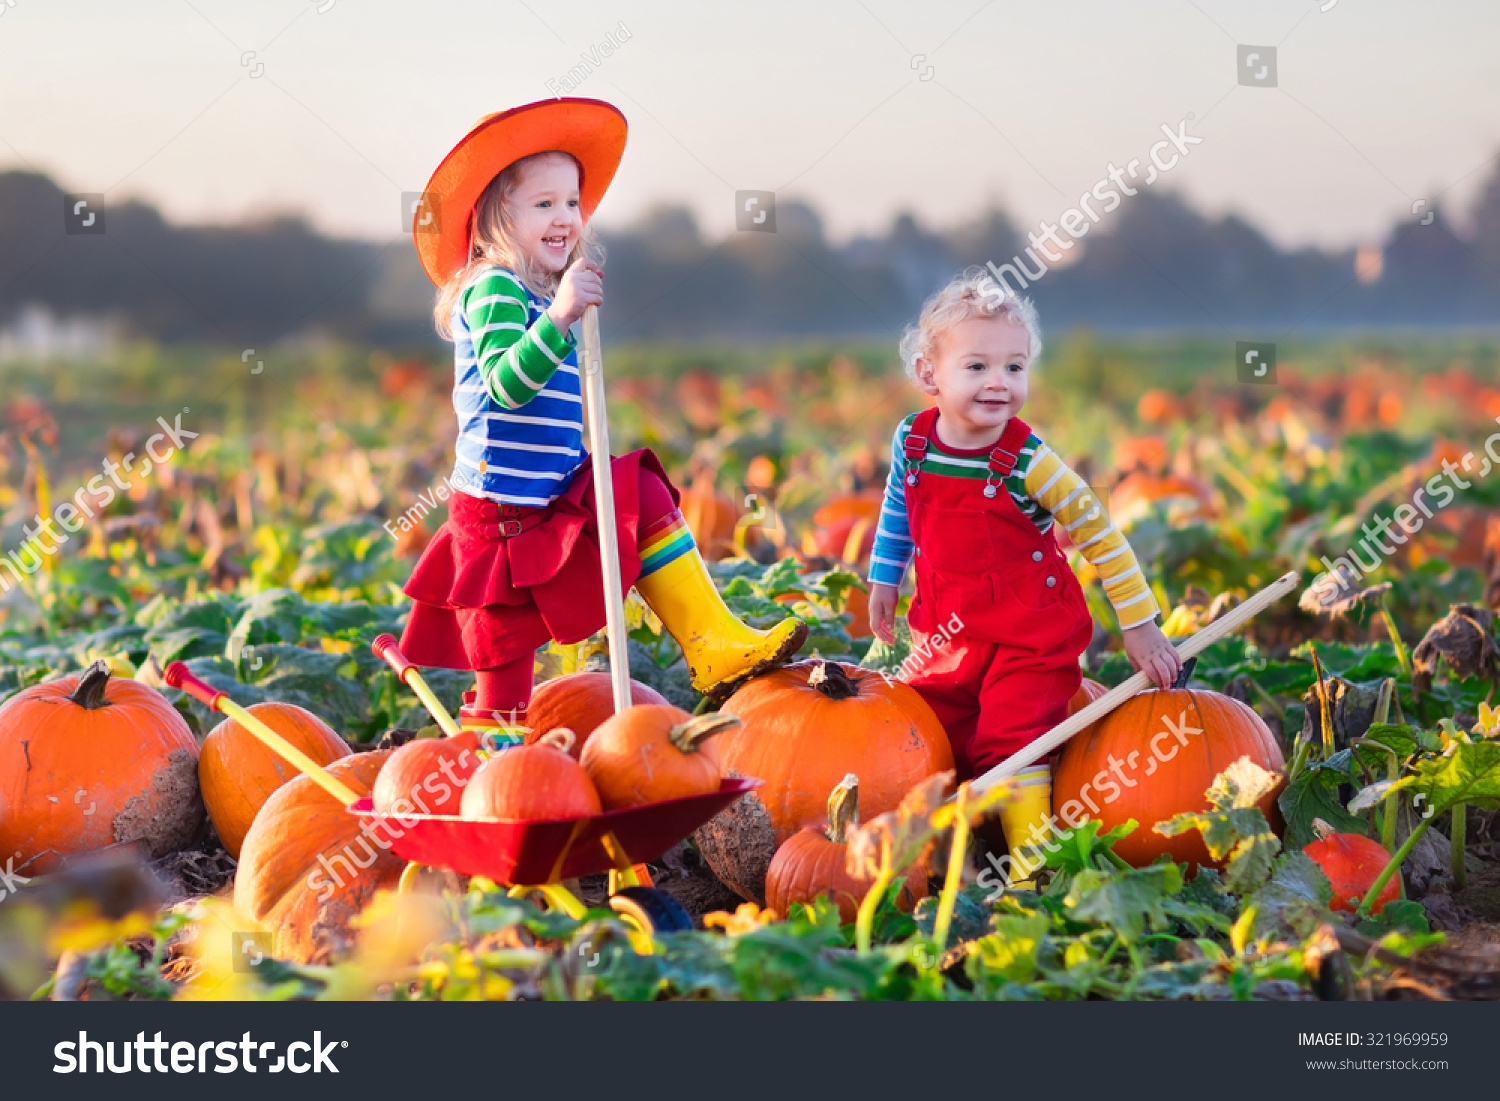 Kids Pumpkin Picking Site Shutterstock Com